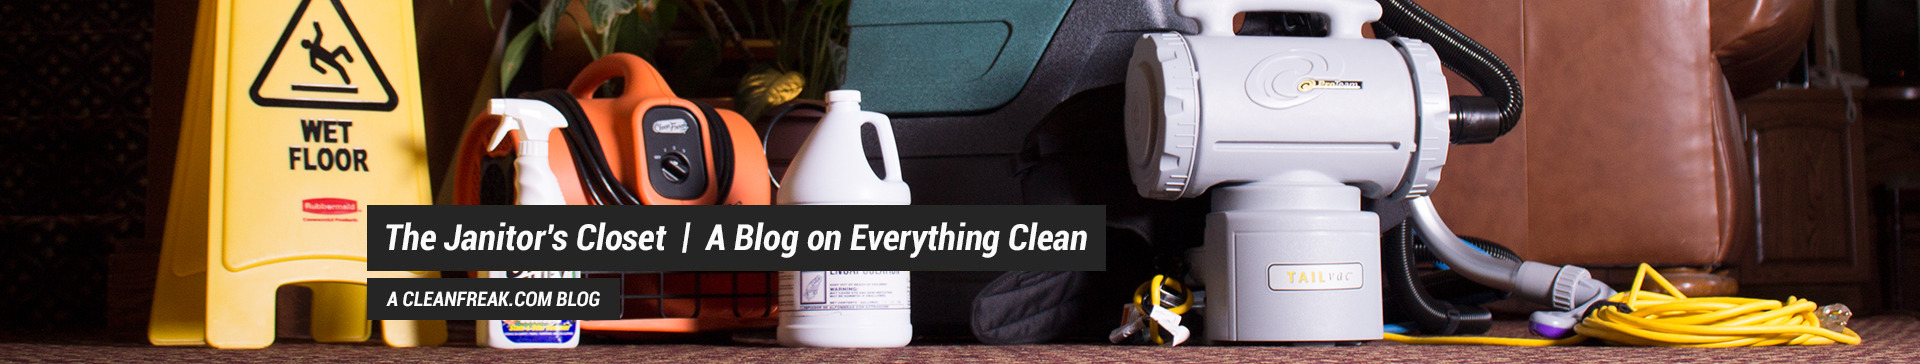 The Janitor's Closet | A Blog on Everything Clean